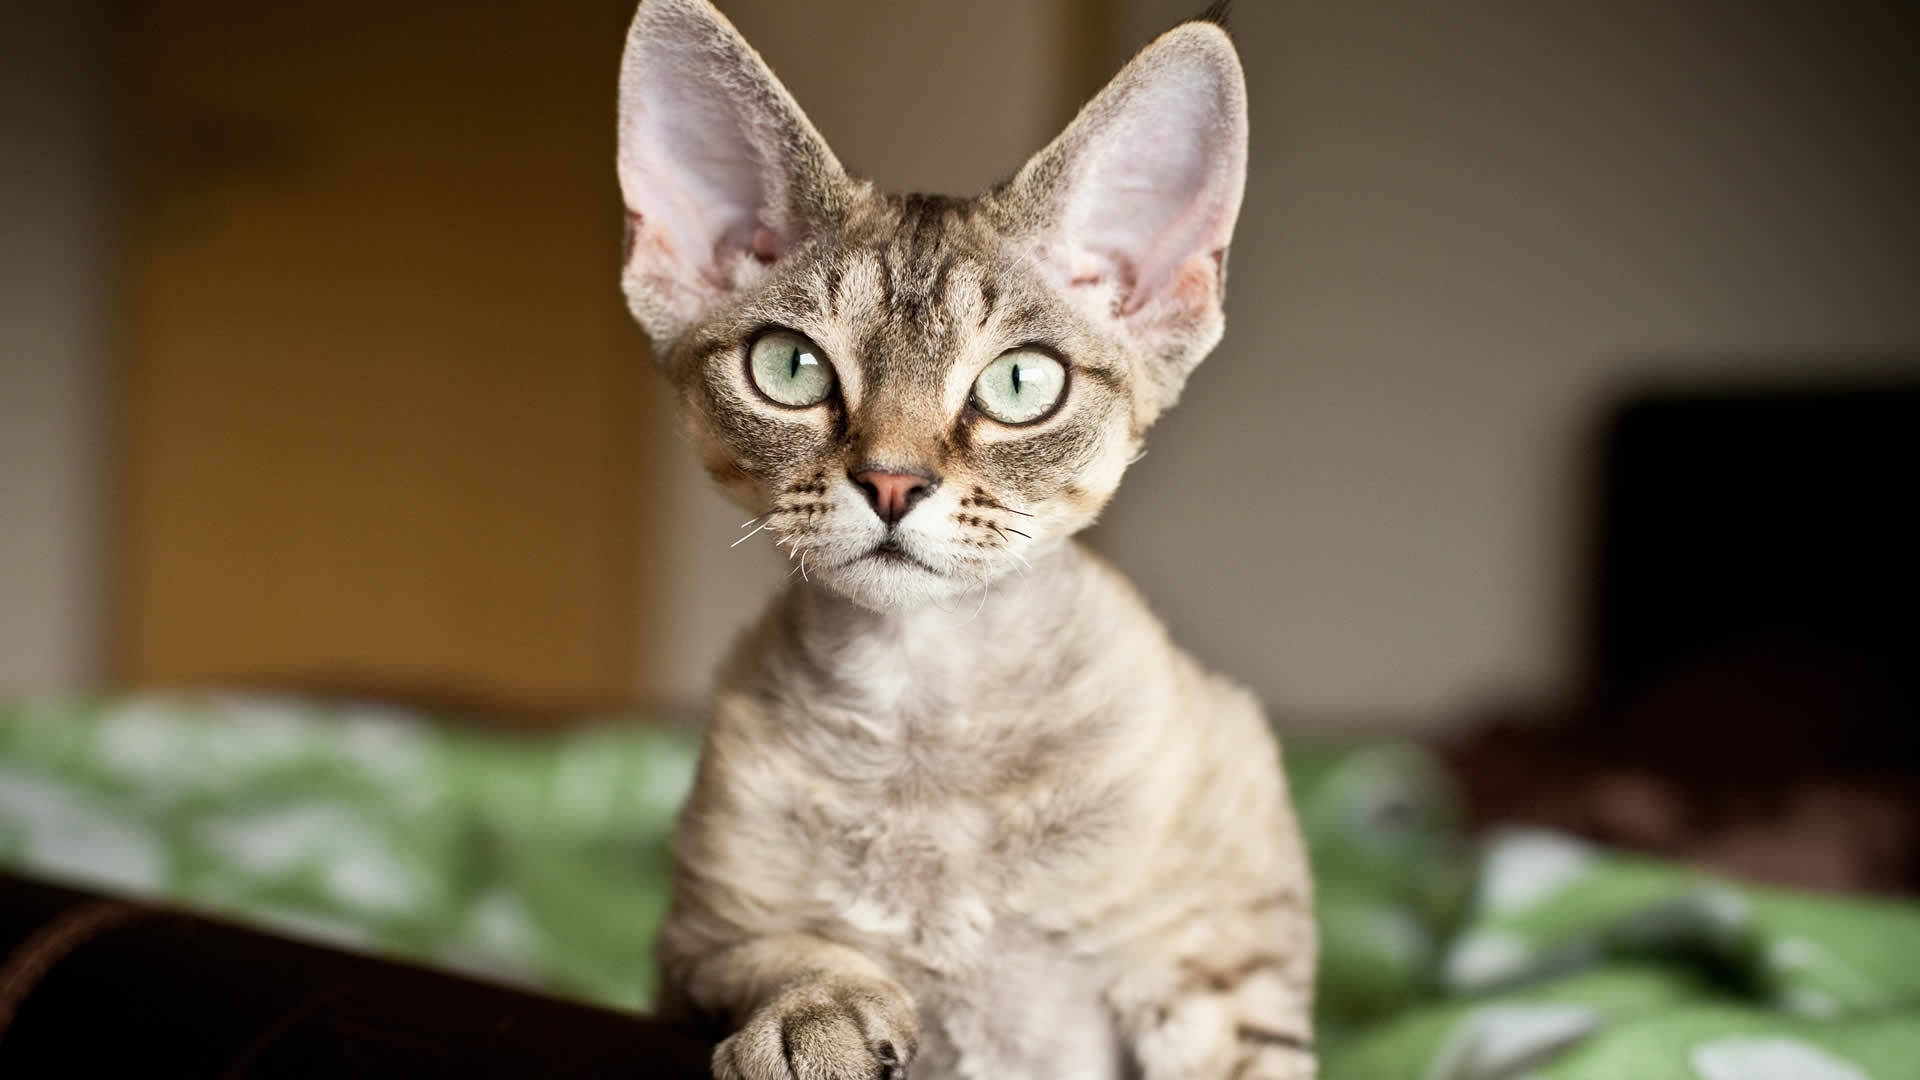 The Oregon Rex cat is the only extinct breed of domesticated felines